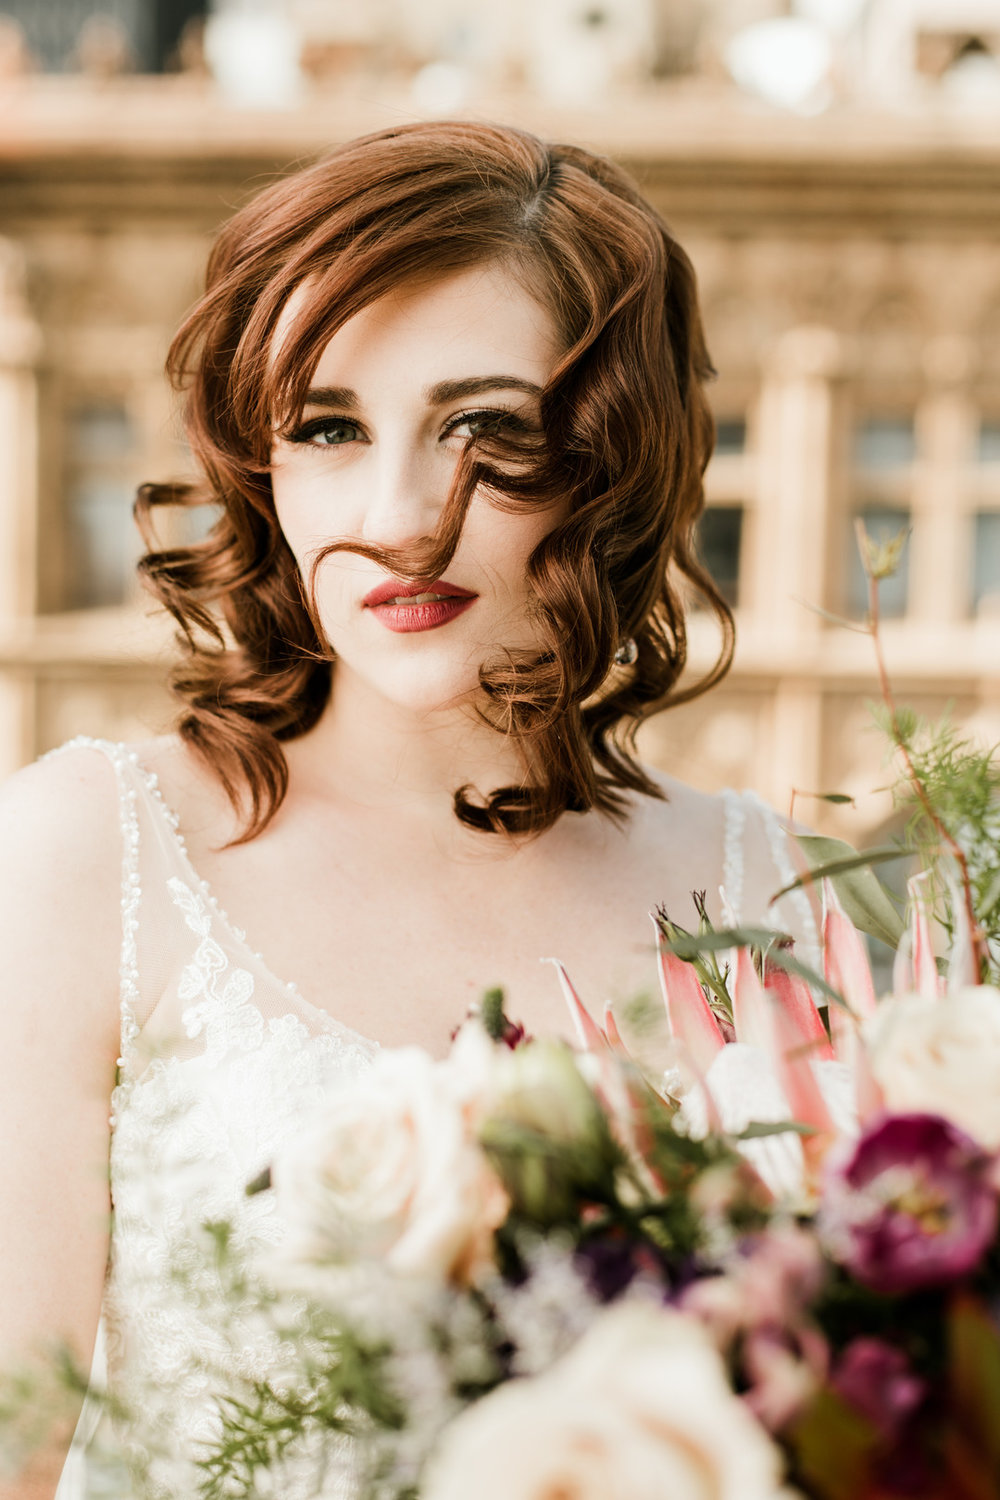 Romantic Bridal Portrait Hair Down Chicago Wedding Stephanie Wood Photography